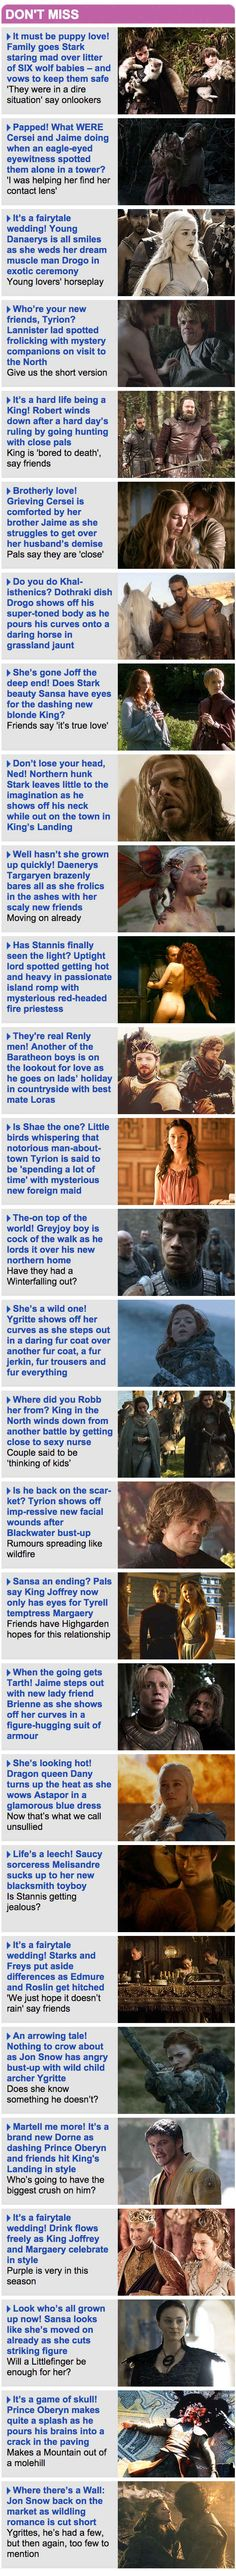 """""""Game Of Thrones"""" As Told By The Daily Mail Sidebar Of Shame   """"Game Of Thrones"""" As Told By The Daily Mail Sidebar Of Shame"""